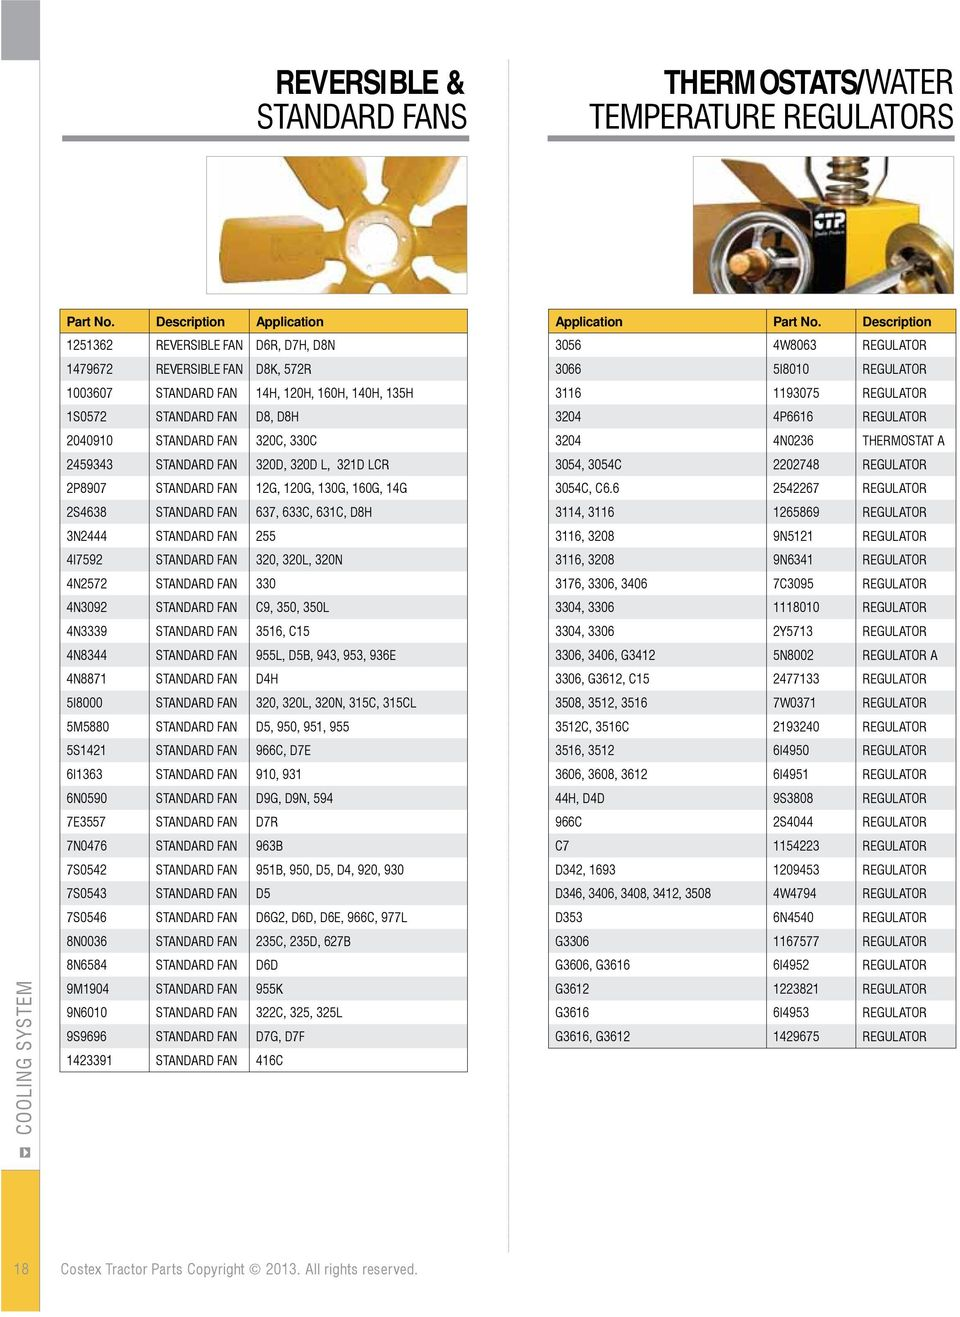 QUALITY REPLACEMENT PARTS FOR YOUR CATERPILLAR EQUIPMENT - PDF